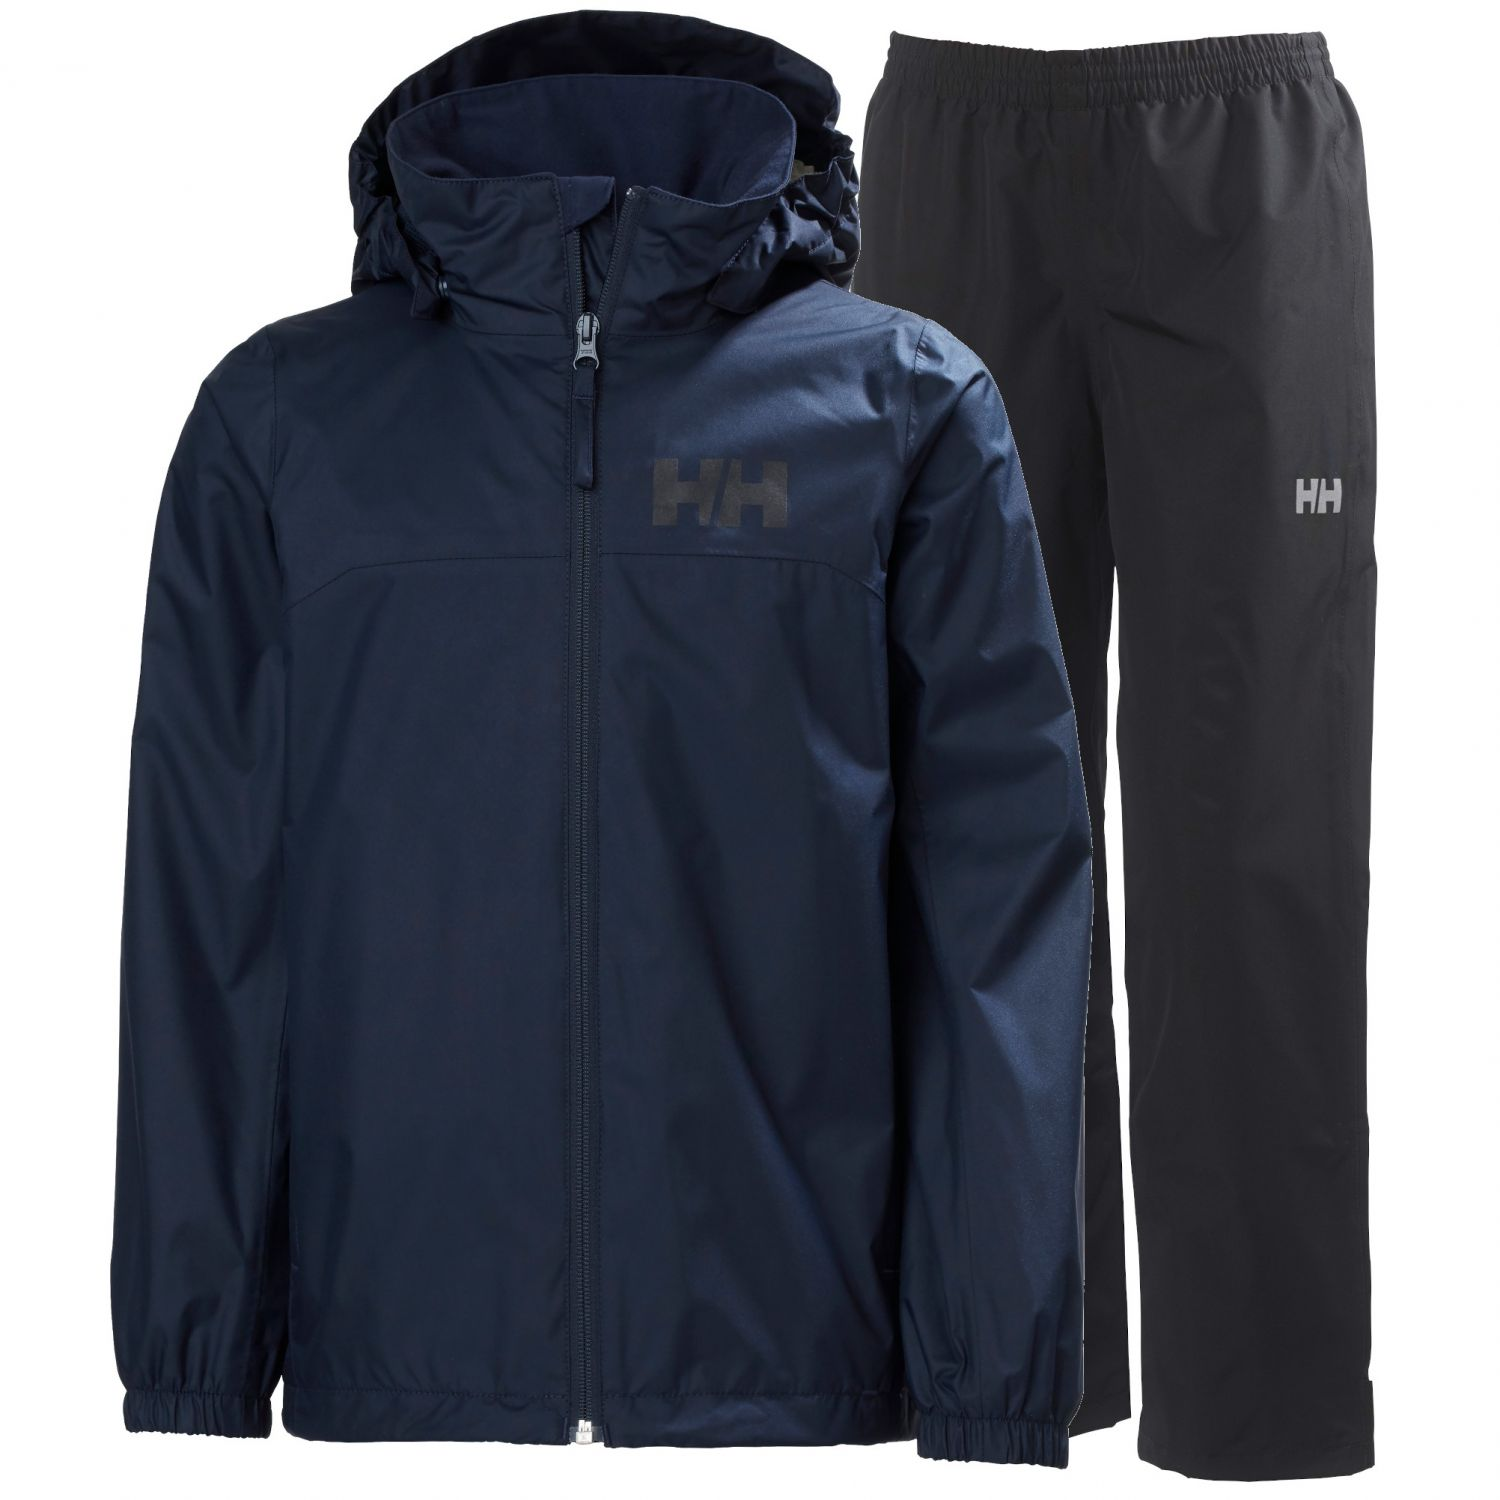 Helly Hansen Urban/Dubliner, Junior, Navy/Black